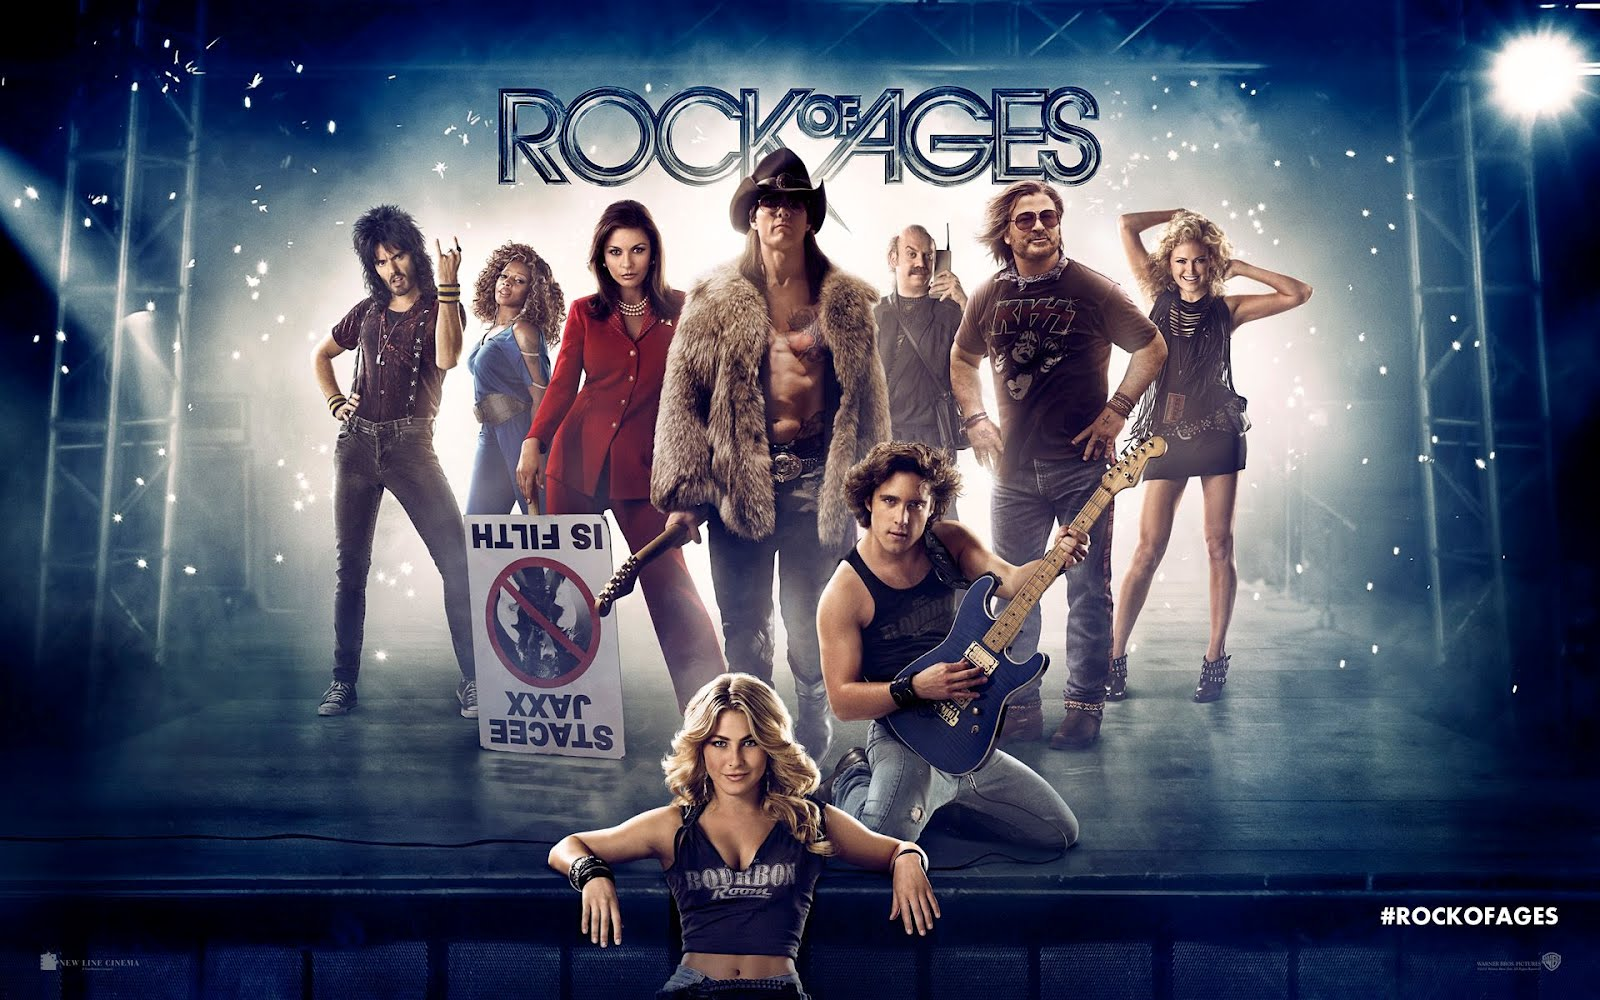 The movie Rock of Ages: trailer, clips, photos, soundtrack, news and ...